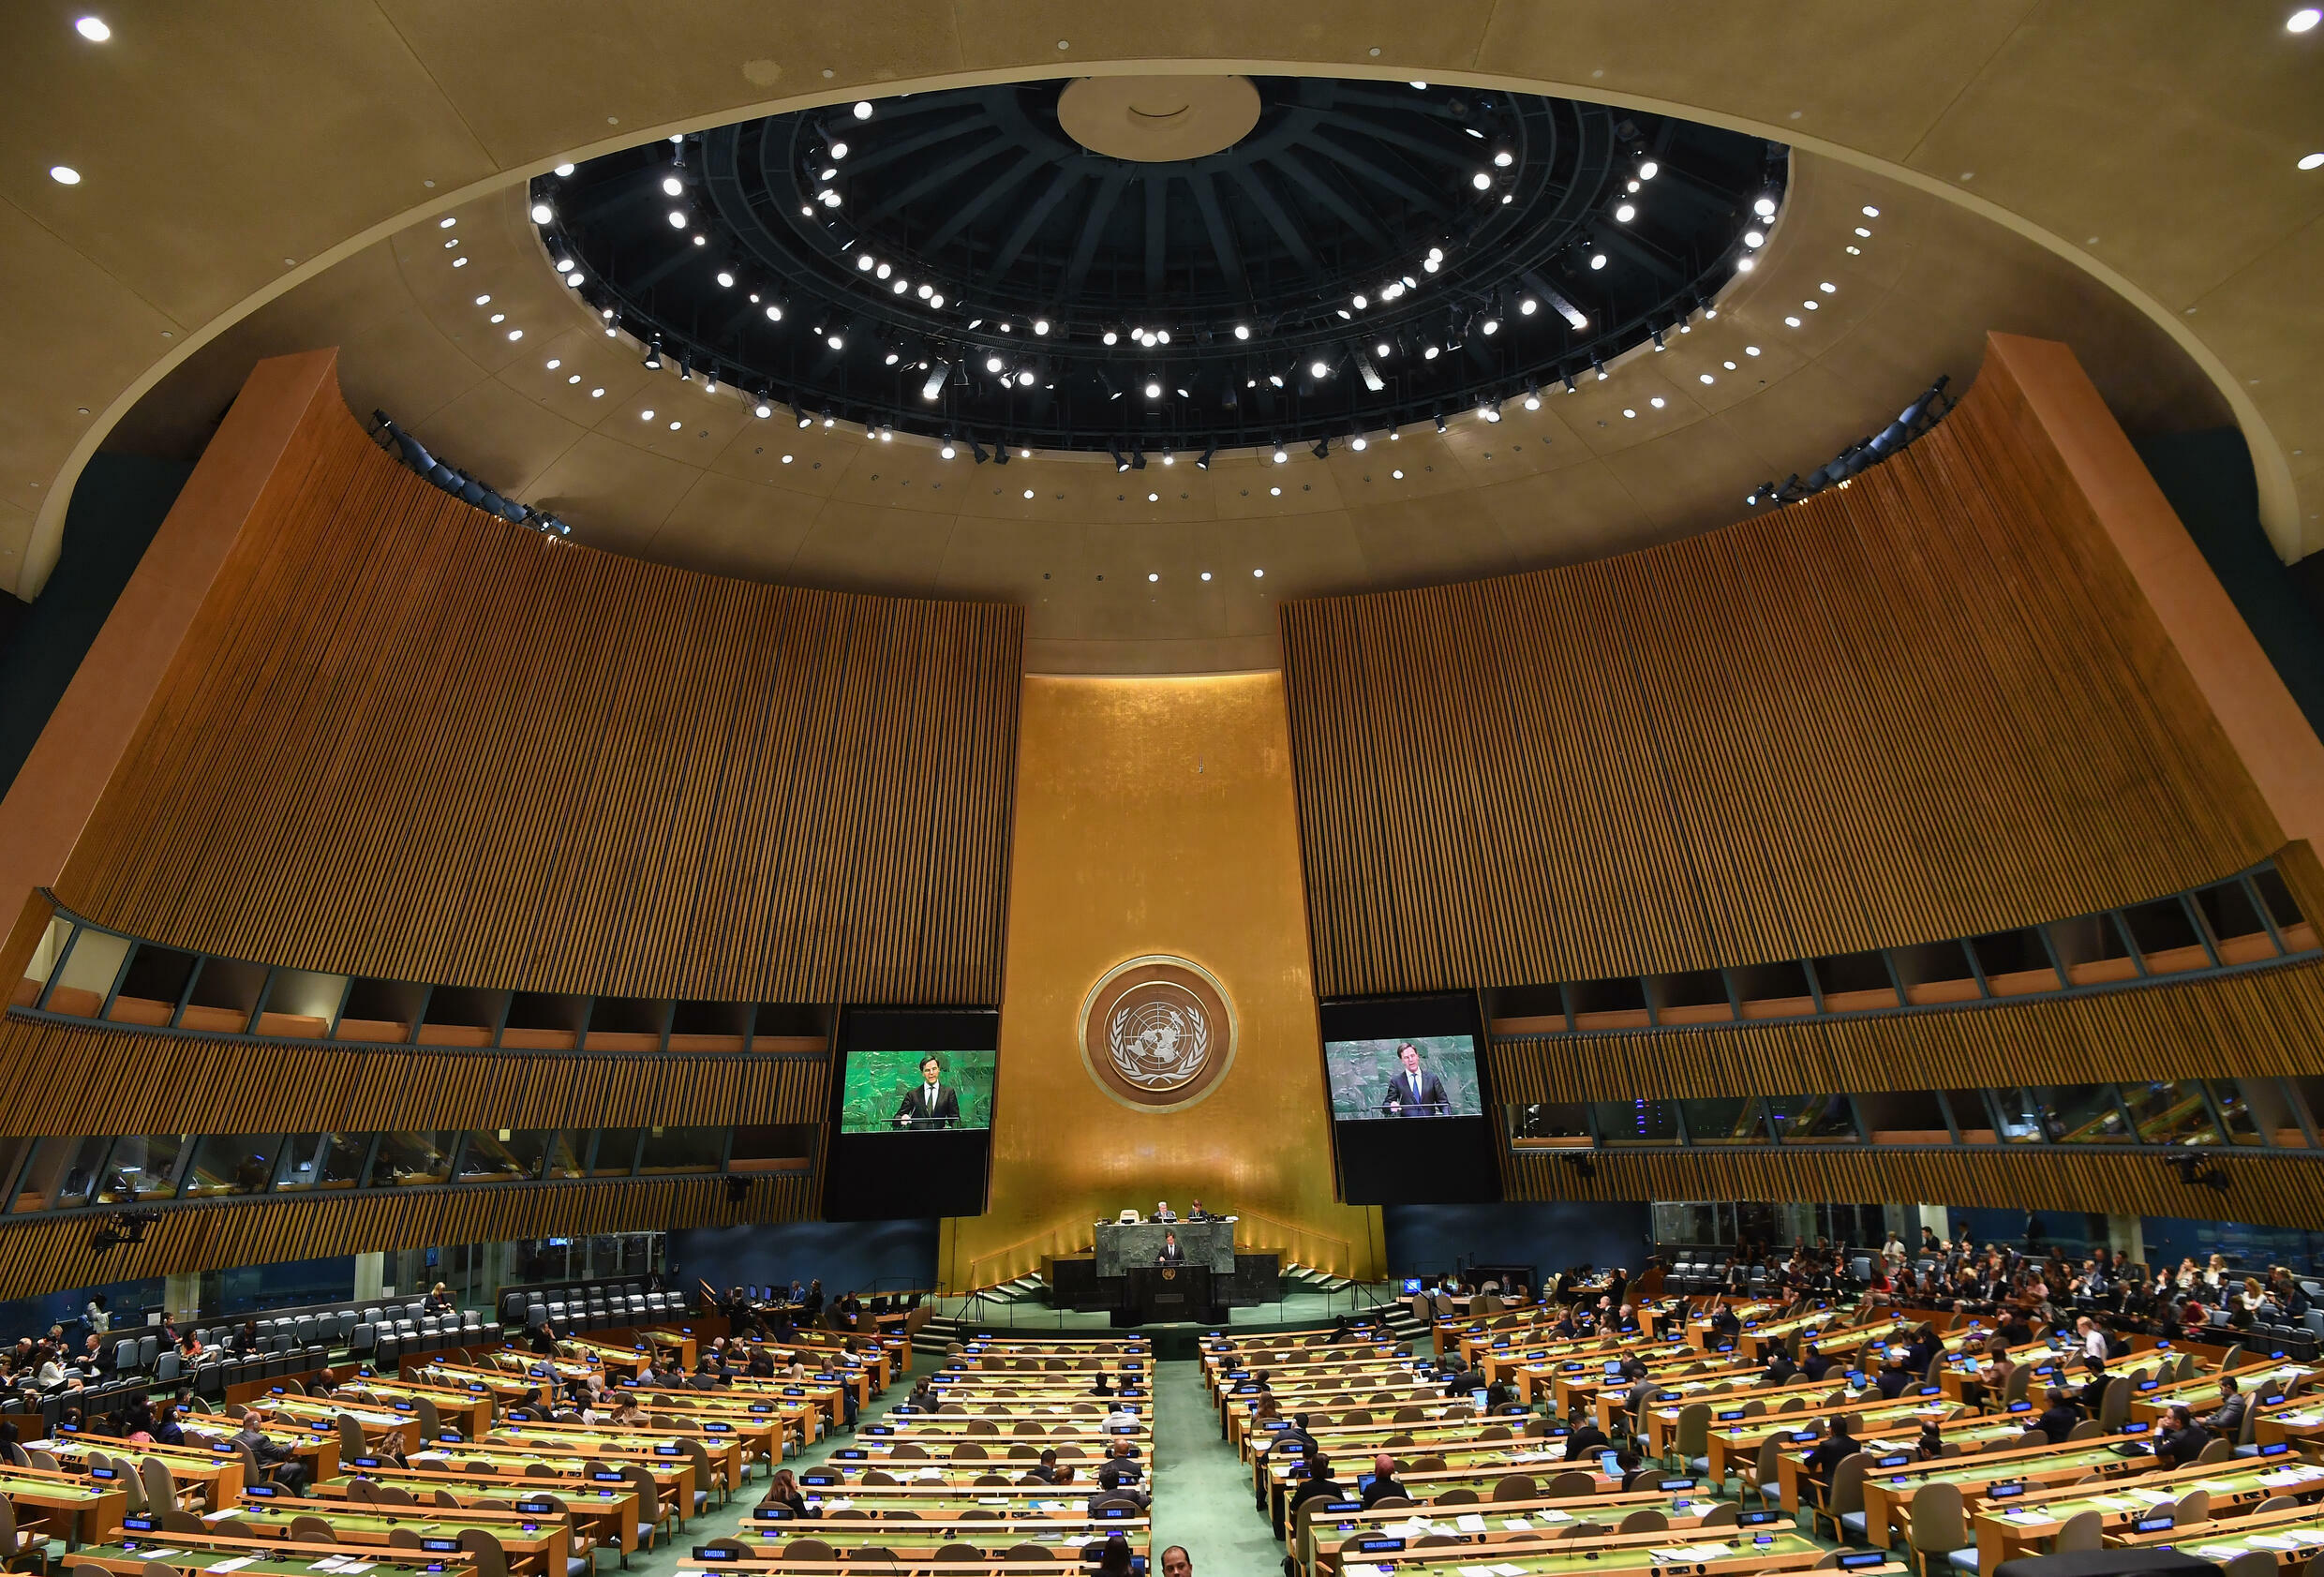 UN delegates must provide proof of vaccination to enter the General Assembly debate hall